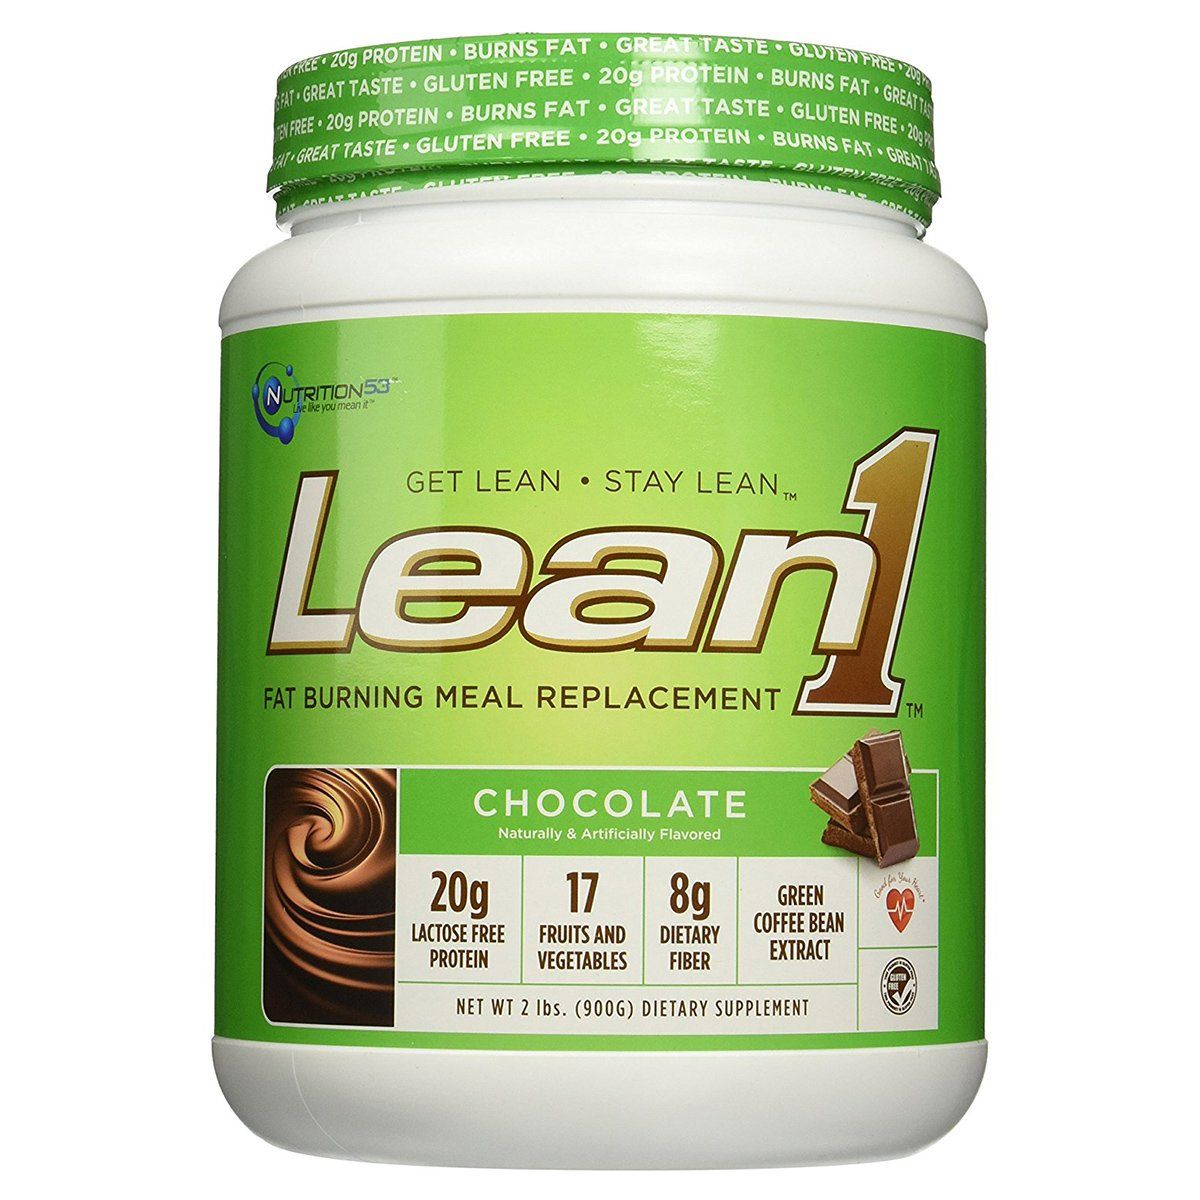 Nutrition 53 Lean1 32.8 oz Protein Nutrition 53  (1058998648875)